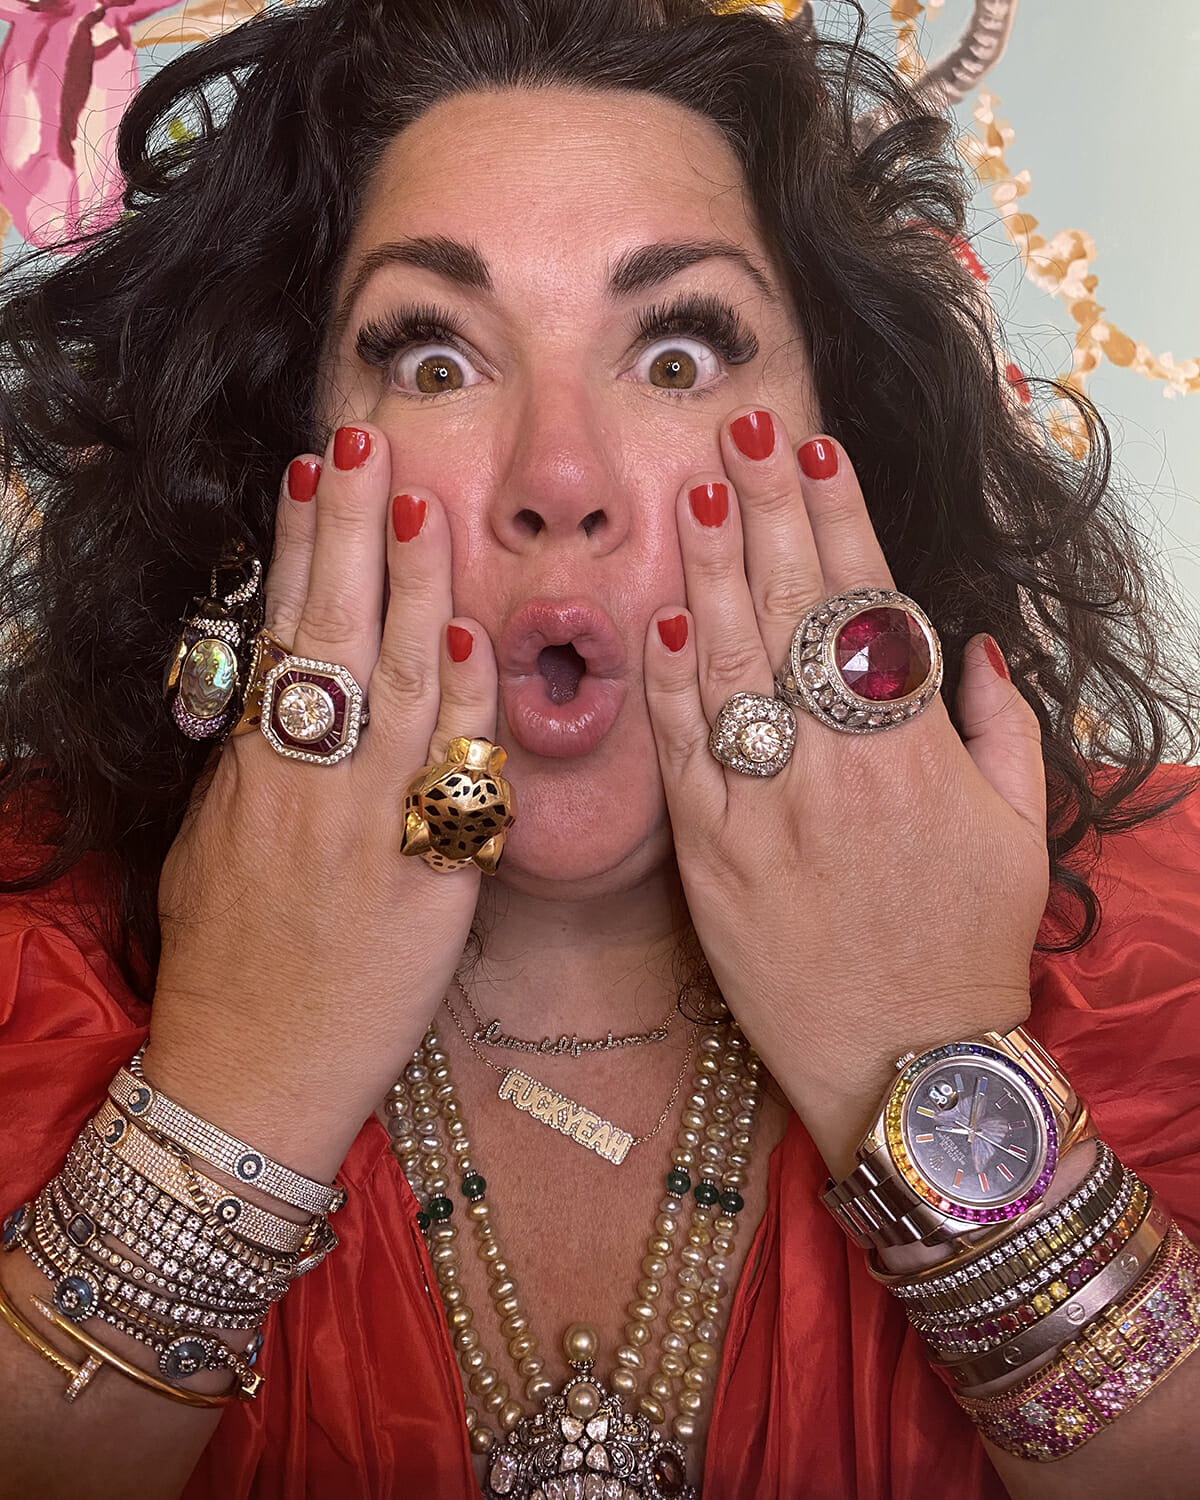 Ashley Longshore's ring collection.